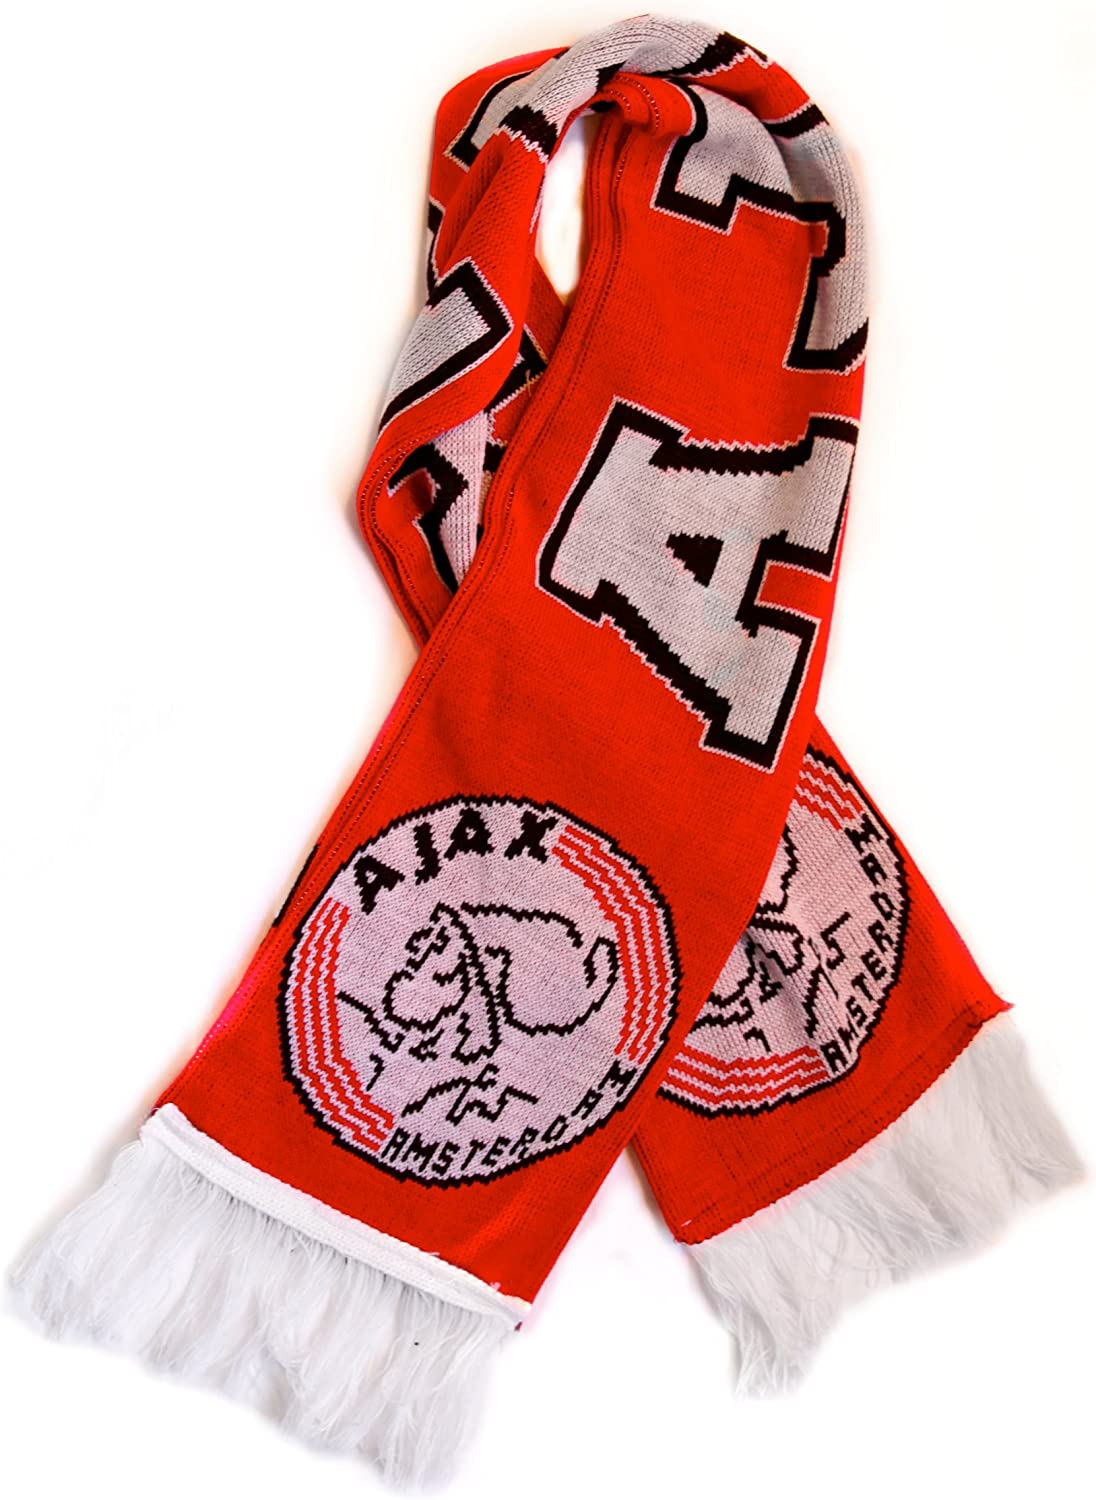 Ajax Fan Scarf Premium Acrylic Knit Outstanding Now free shipping